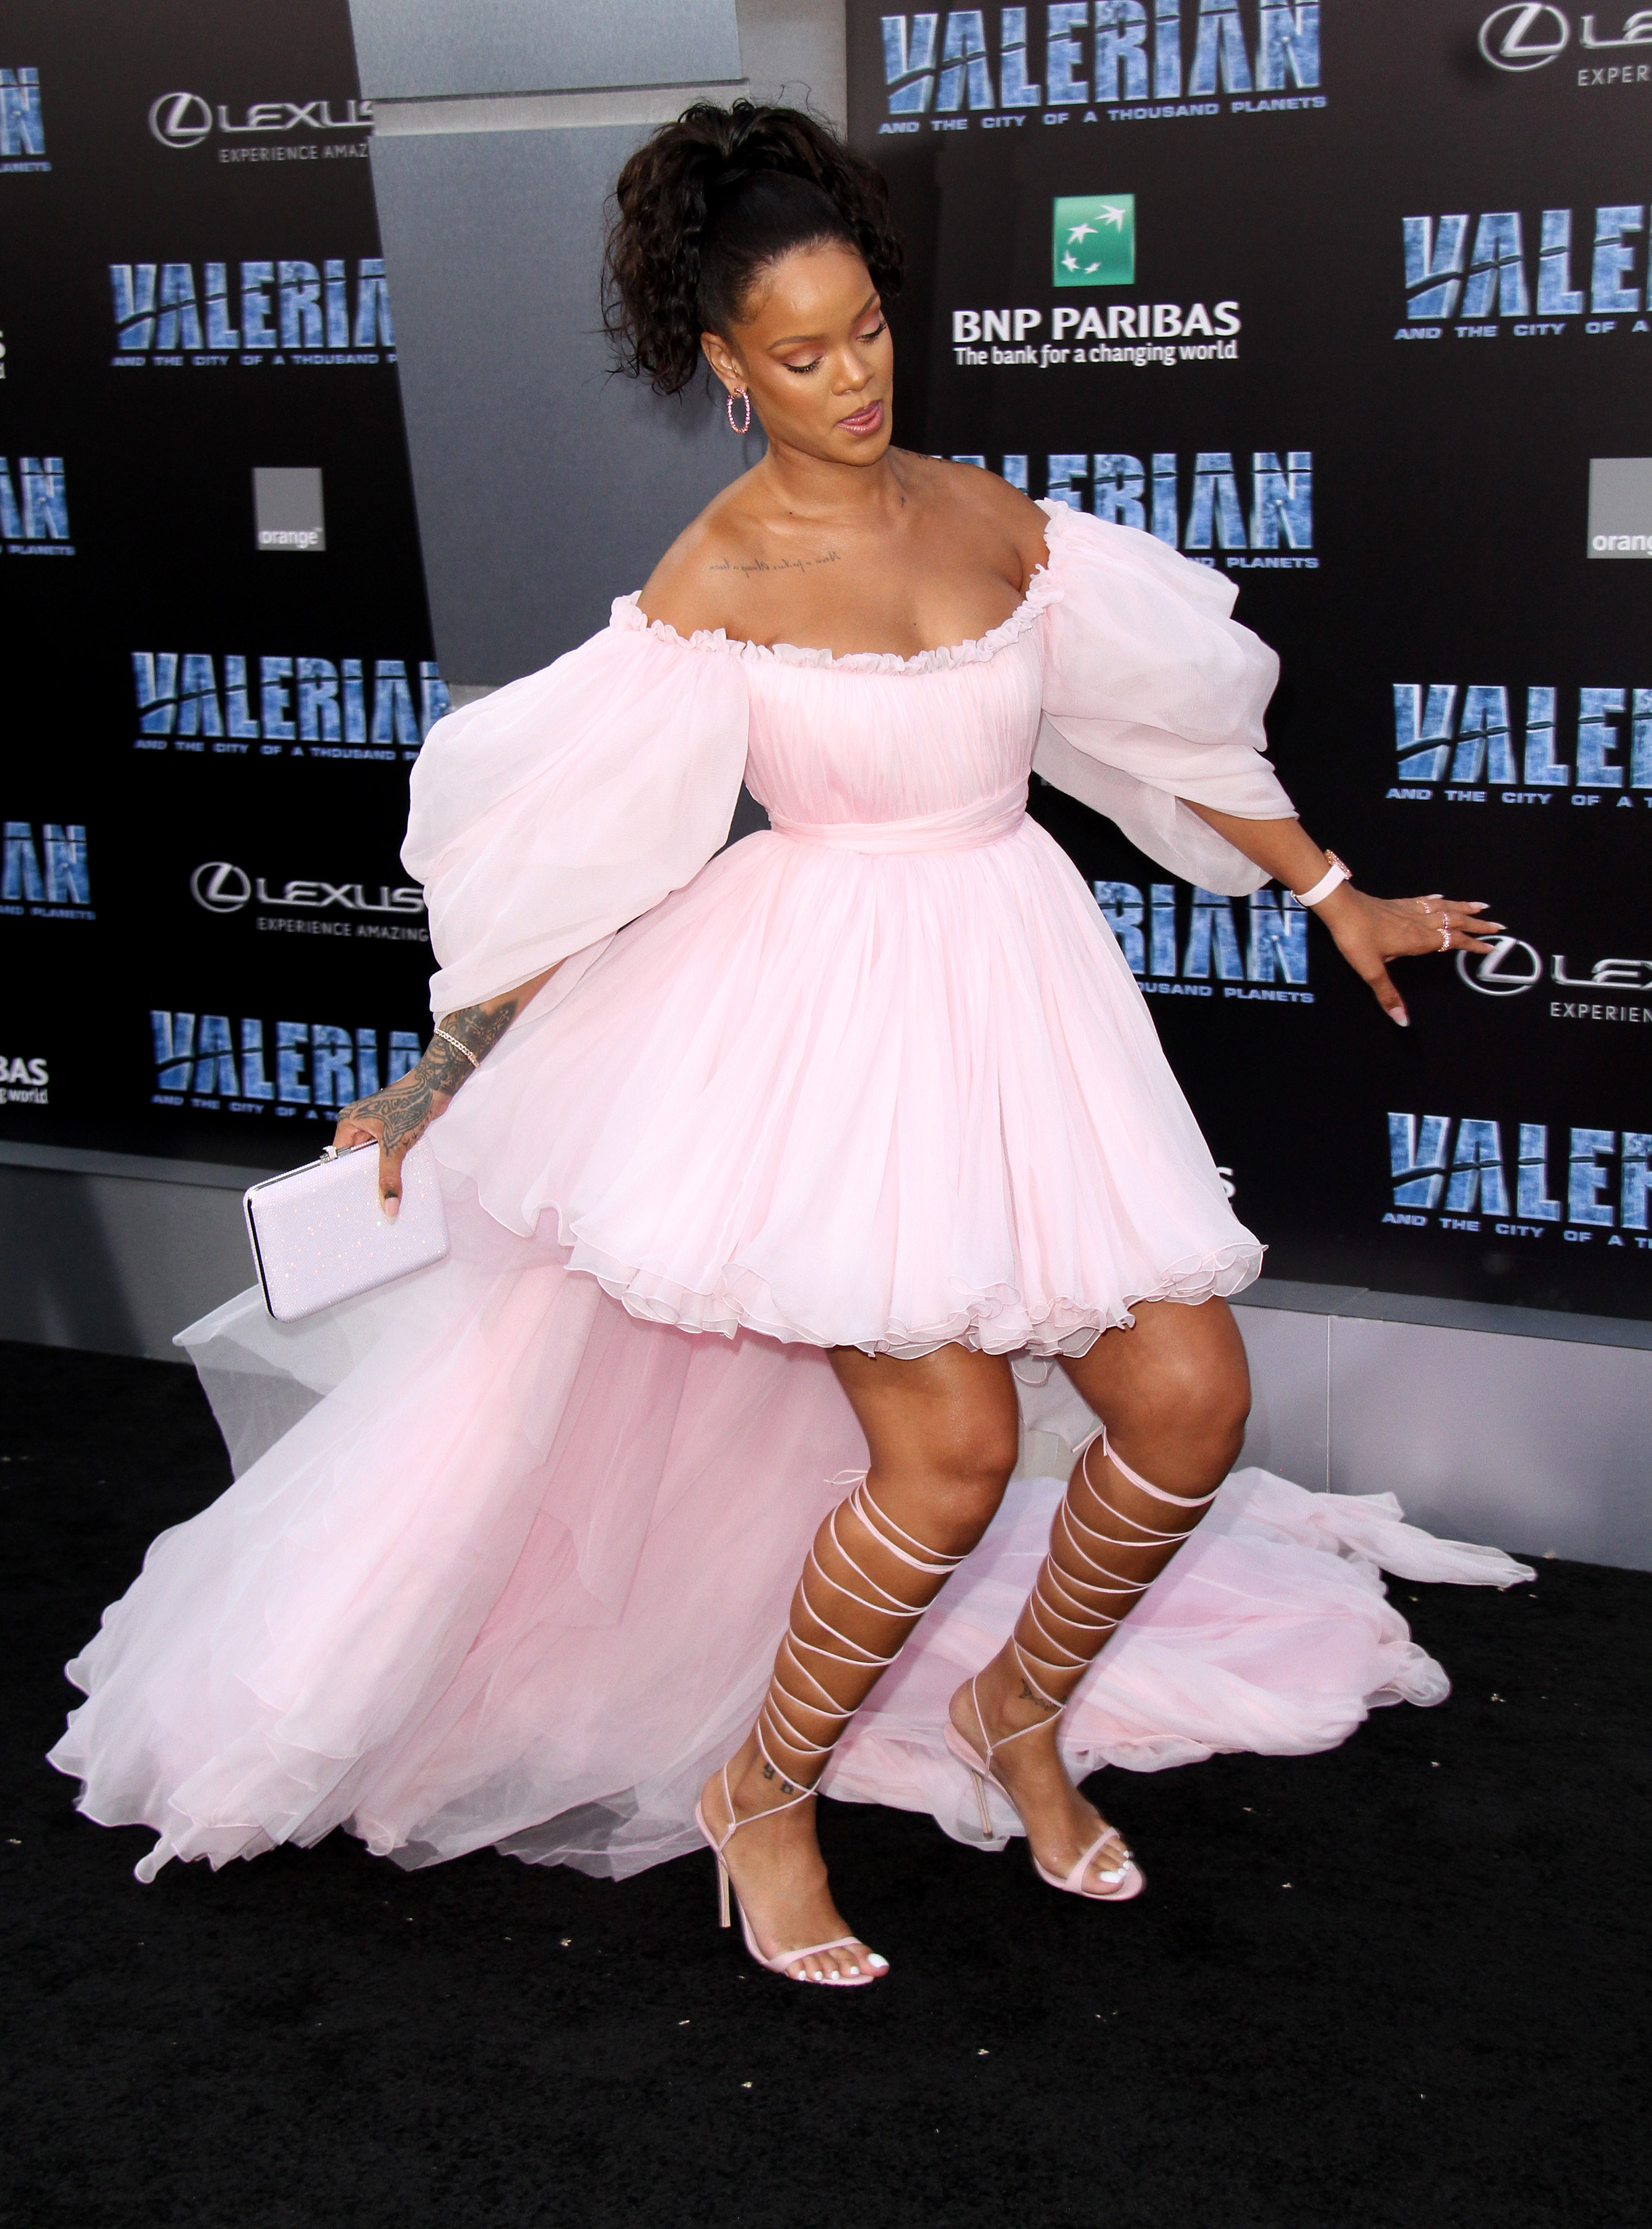 World premiere of 'Valerian and the City of a Thousand Planets' at the TCL Chinese Theatre - Arrivals                                    Featuring: Rihanna                  Where: Los Angeles, California, United States                  When: 17 Jul 2017                  Credit: Adriana M. Barraza/WENN.com